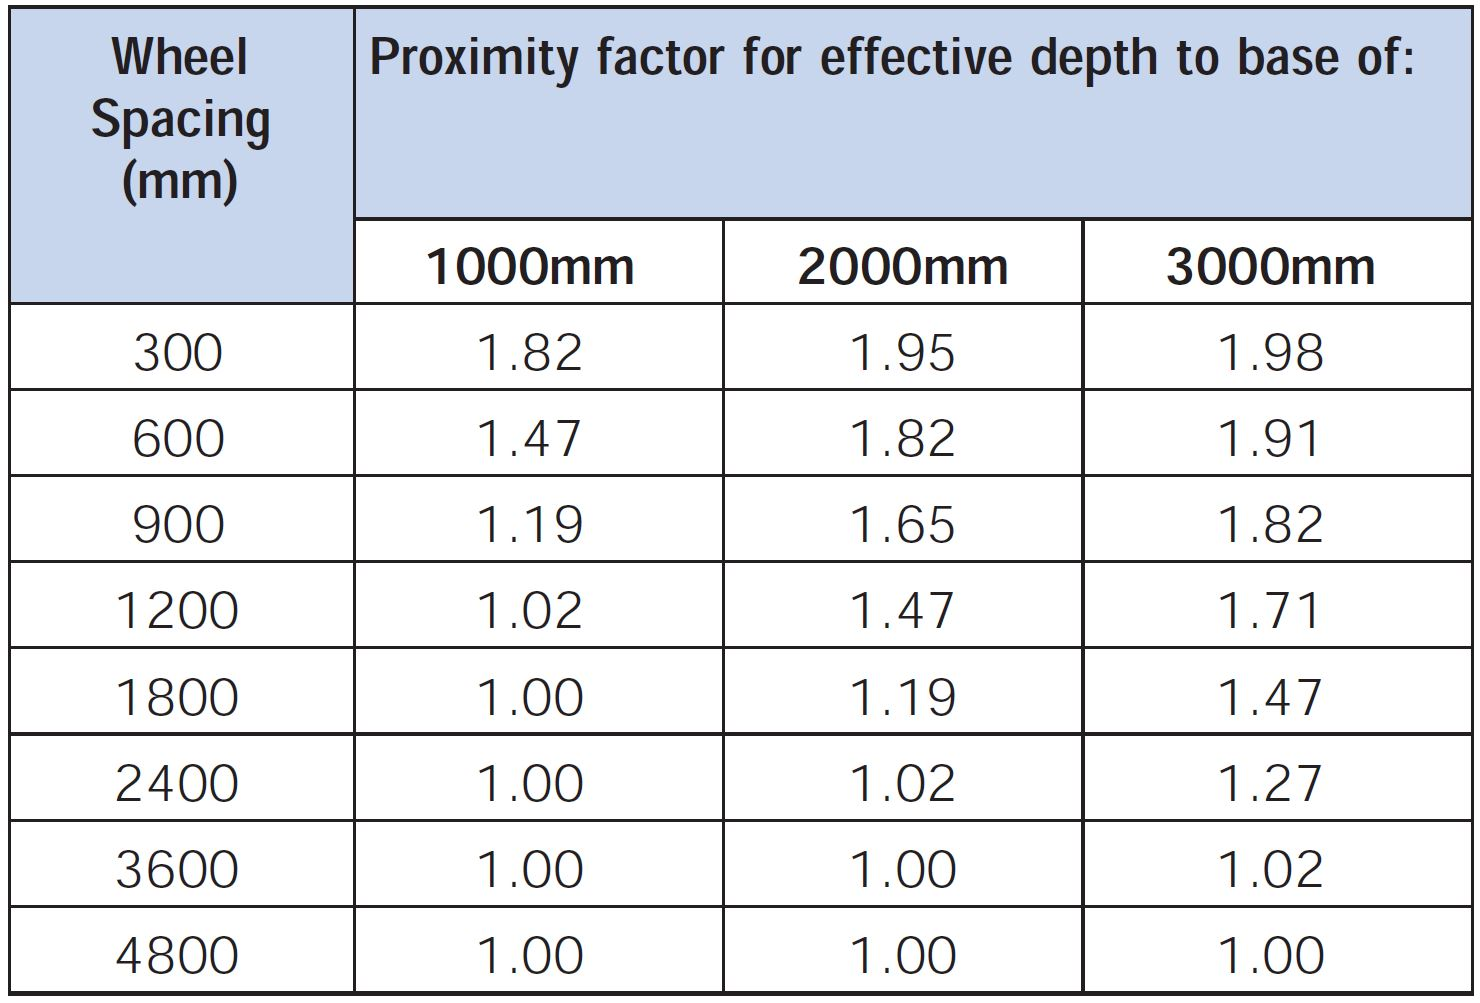 Heavy Duty Pavement Design - Proximity Factor Table